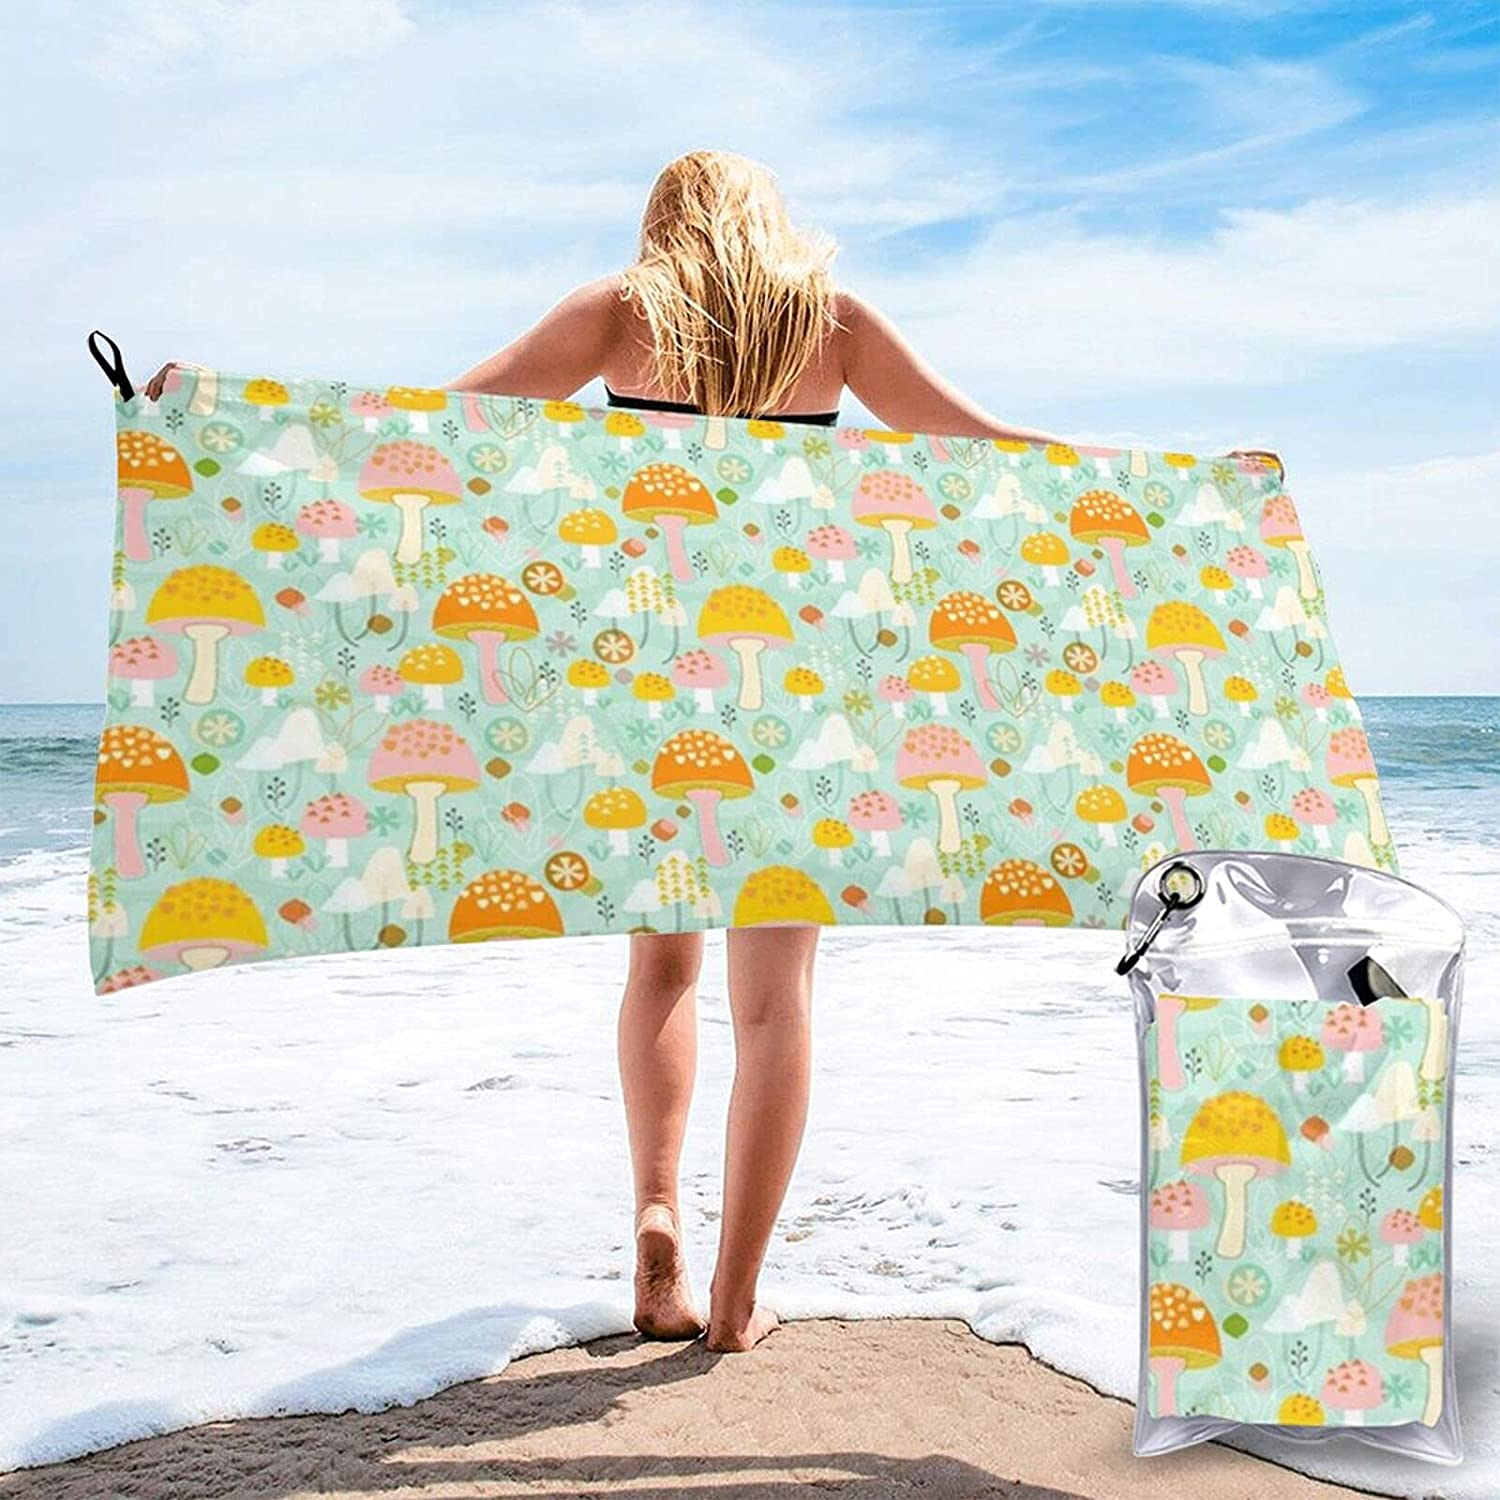 N\\A Los Angeles Mall Magnificent Mushrooms Beach Towel Absorpt Bath Water Limited price Towels